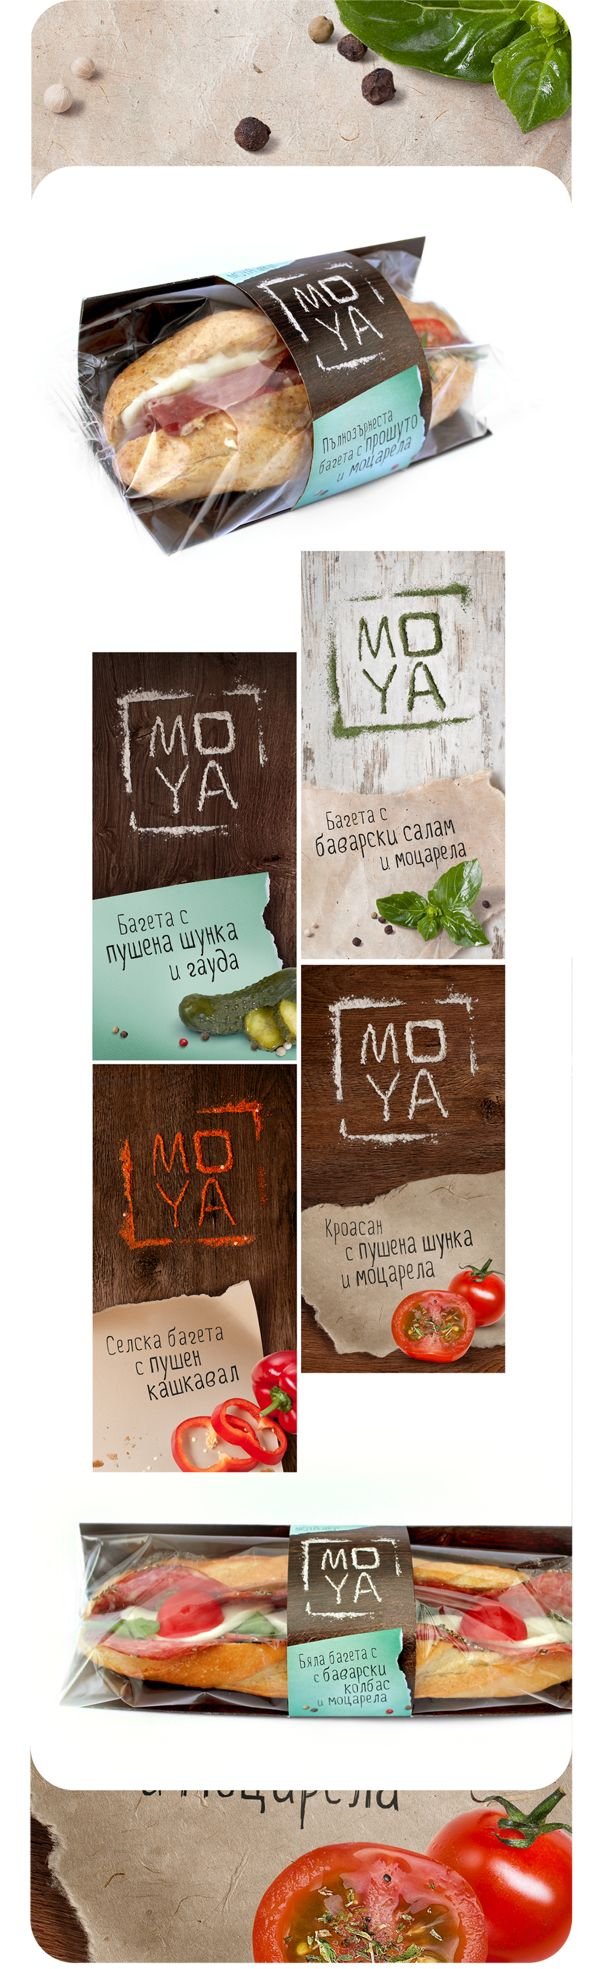 Moya sandwiches by Boyko Taskov, via Behance I love this sandwich packaging PD